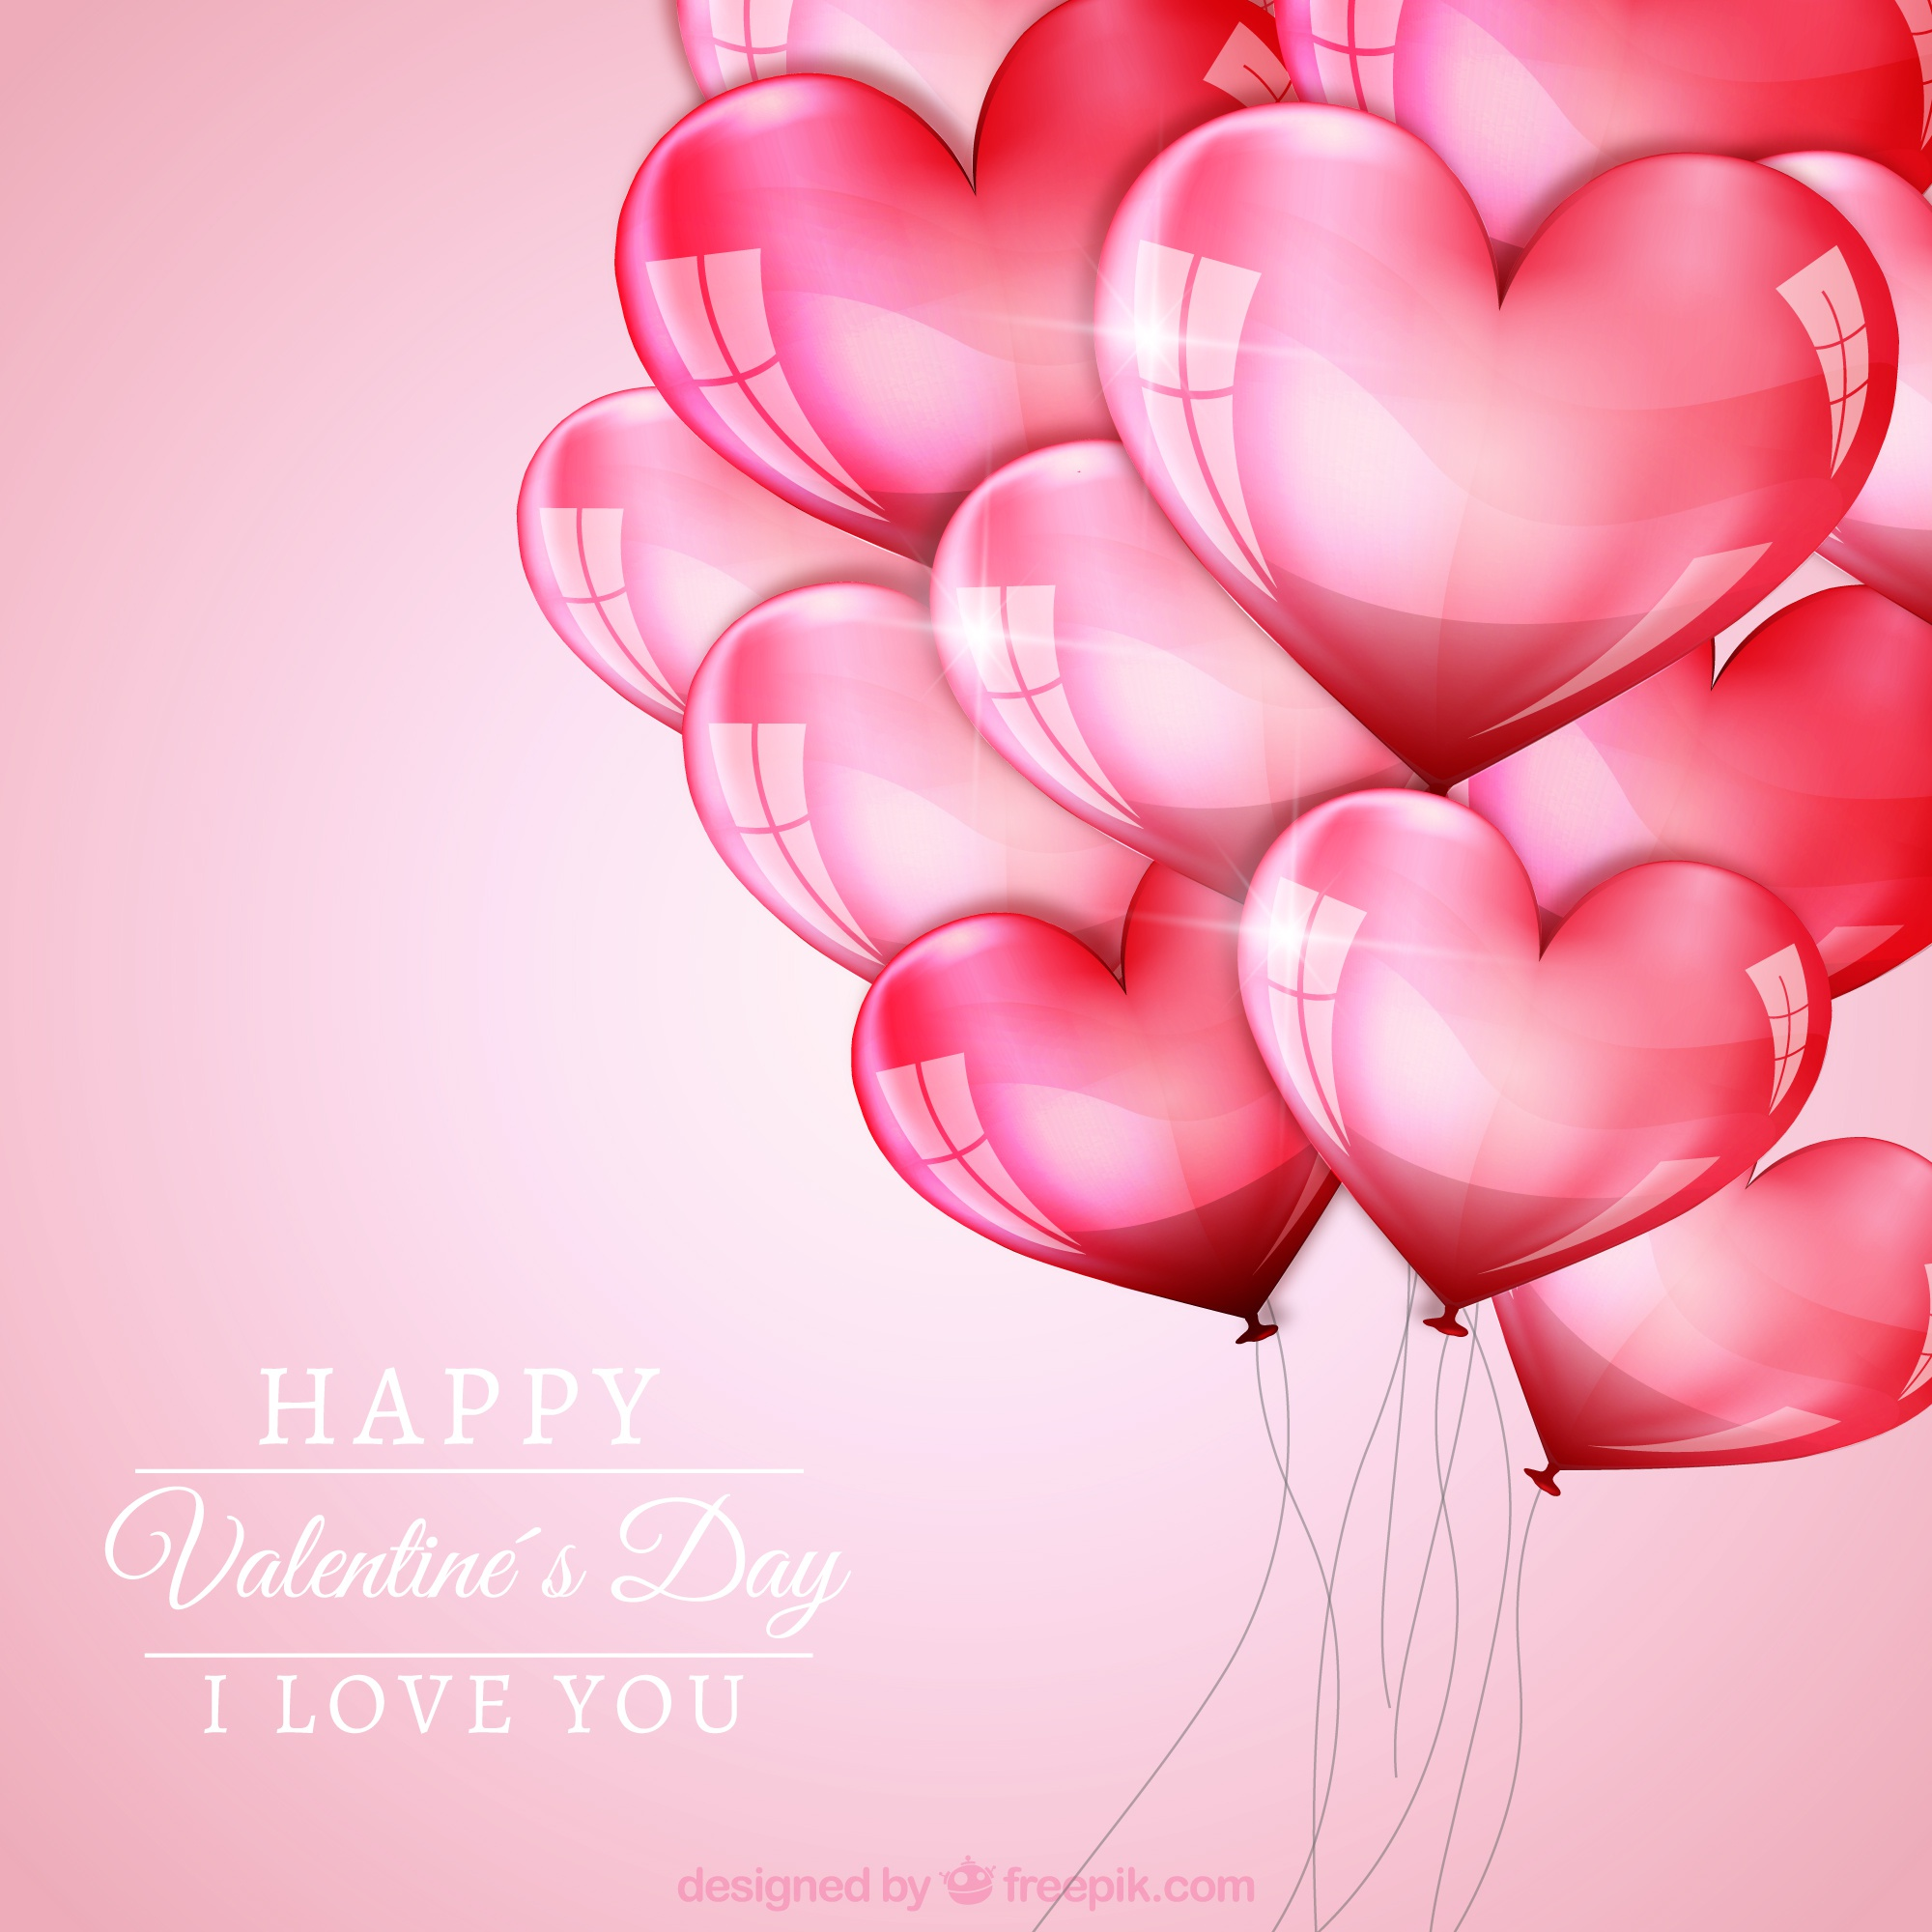 Valentines day background with heart balloons